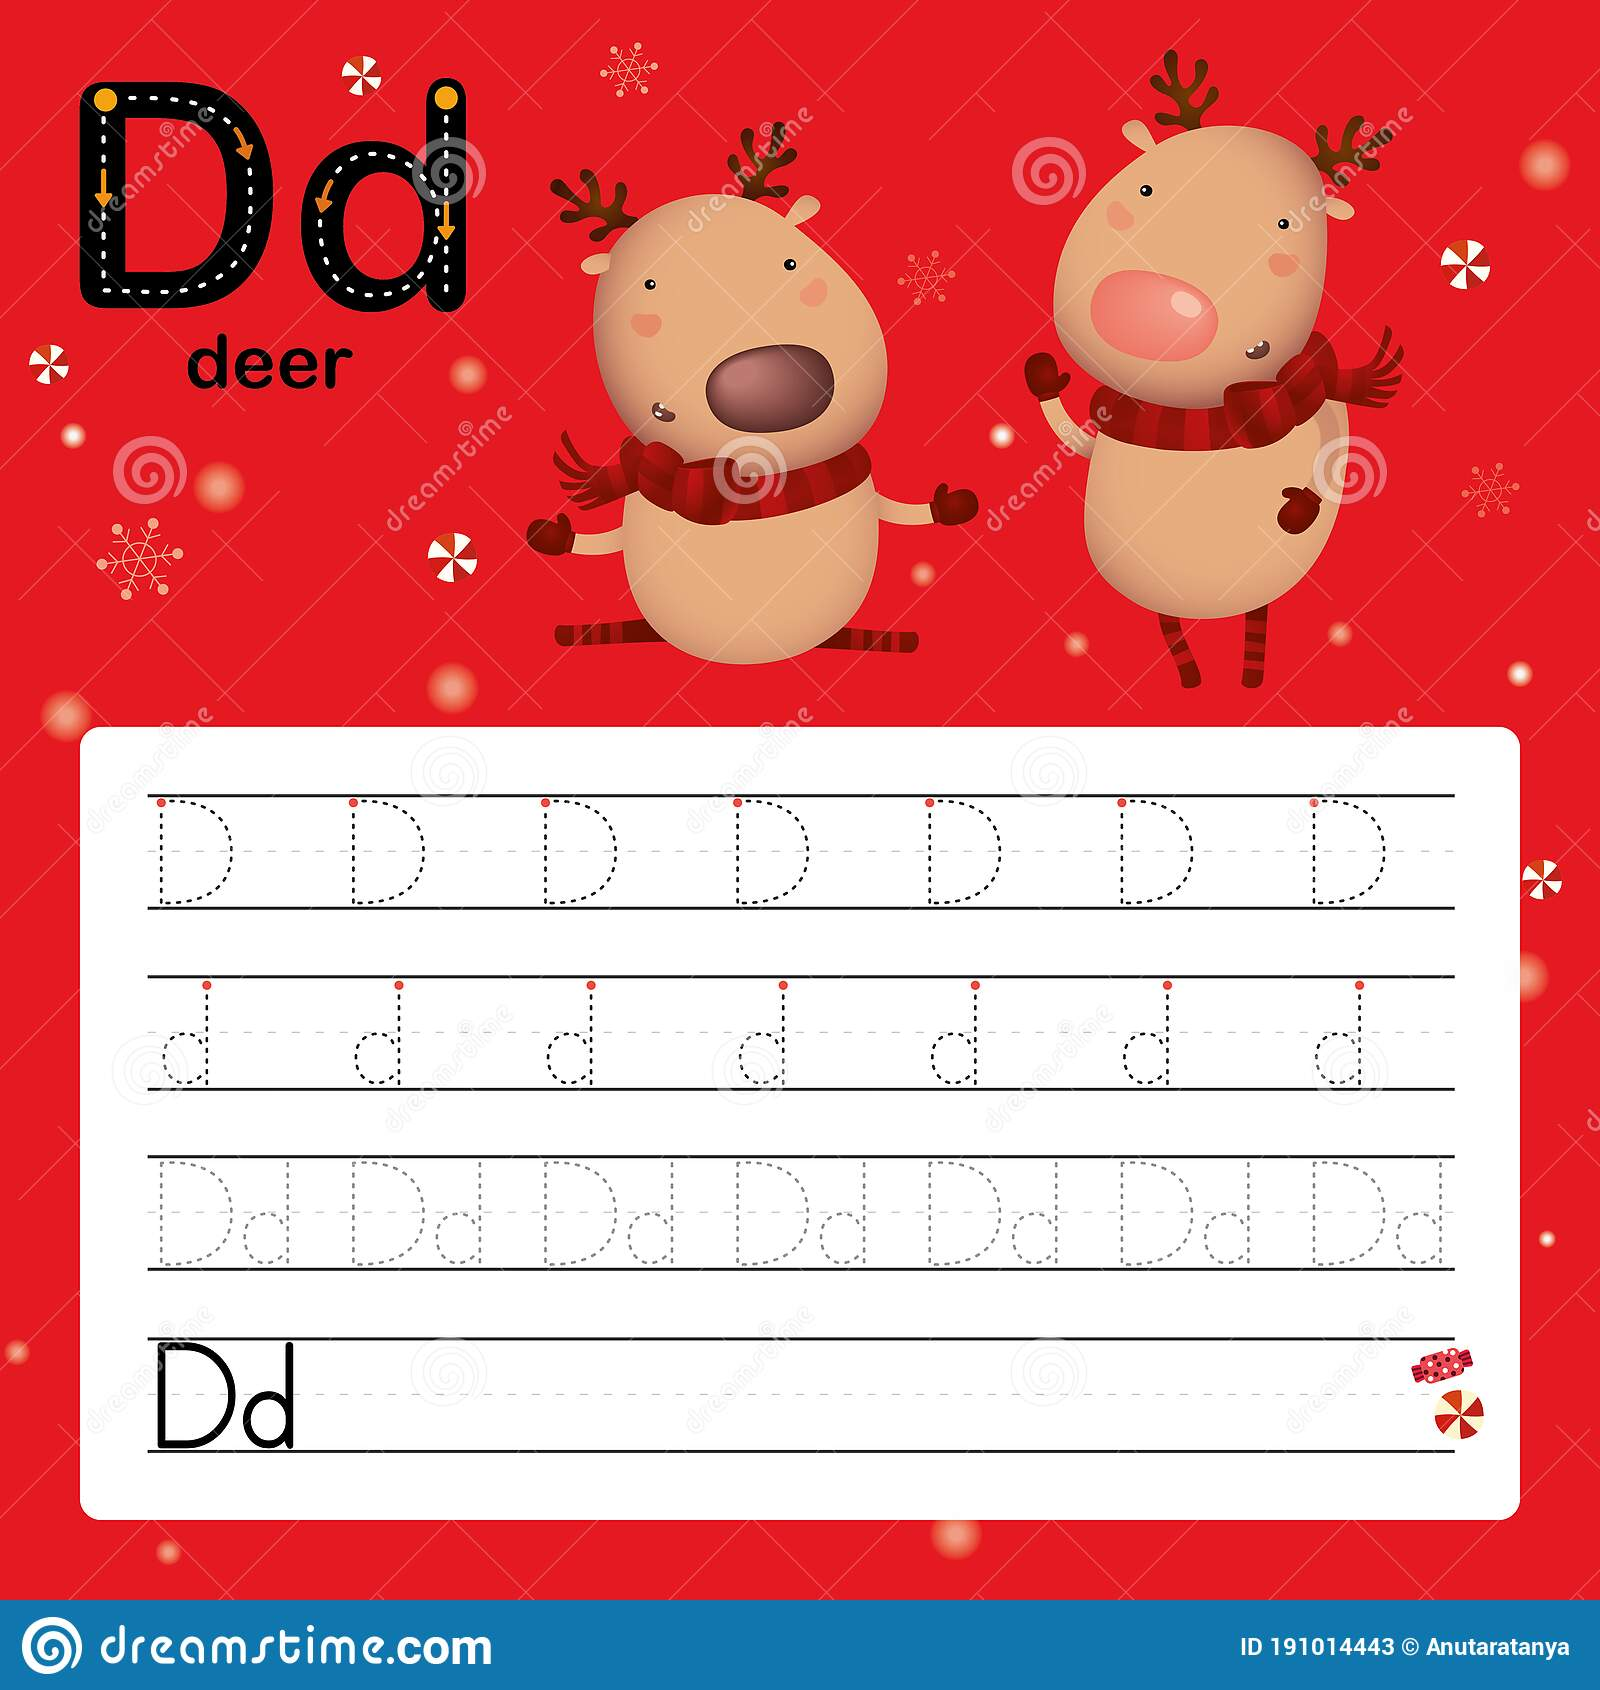 D Deer Alphabet Tracing Worksheet For Preschool And